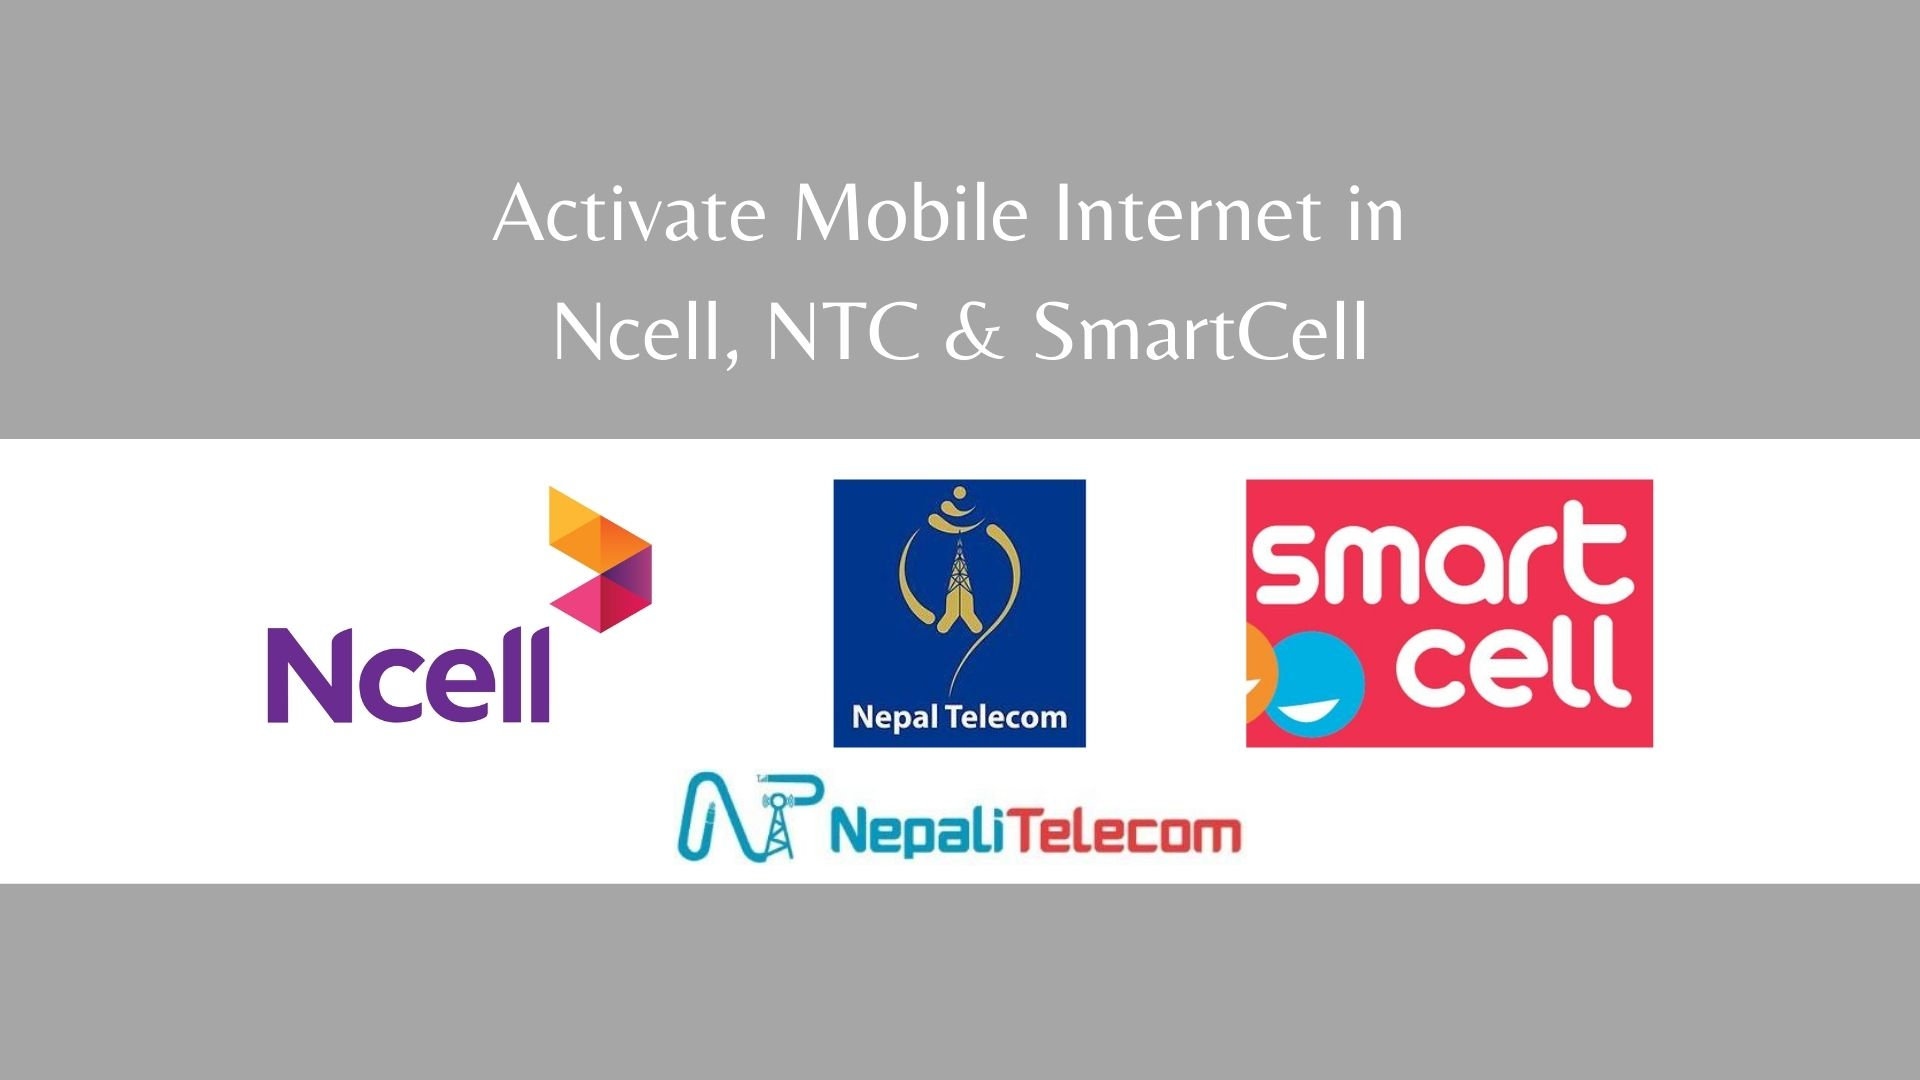 How To Activate Mobile Internet in Ncell, NTC & Smart Cell